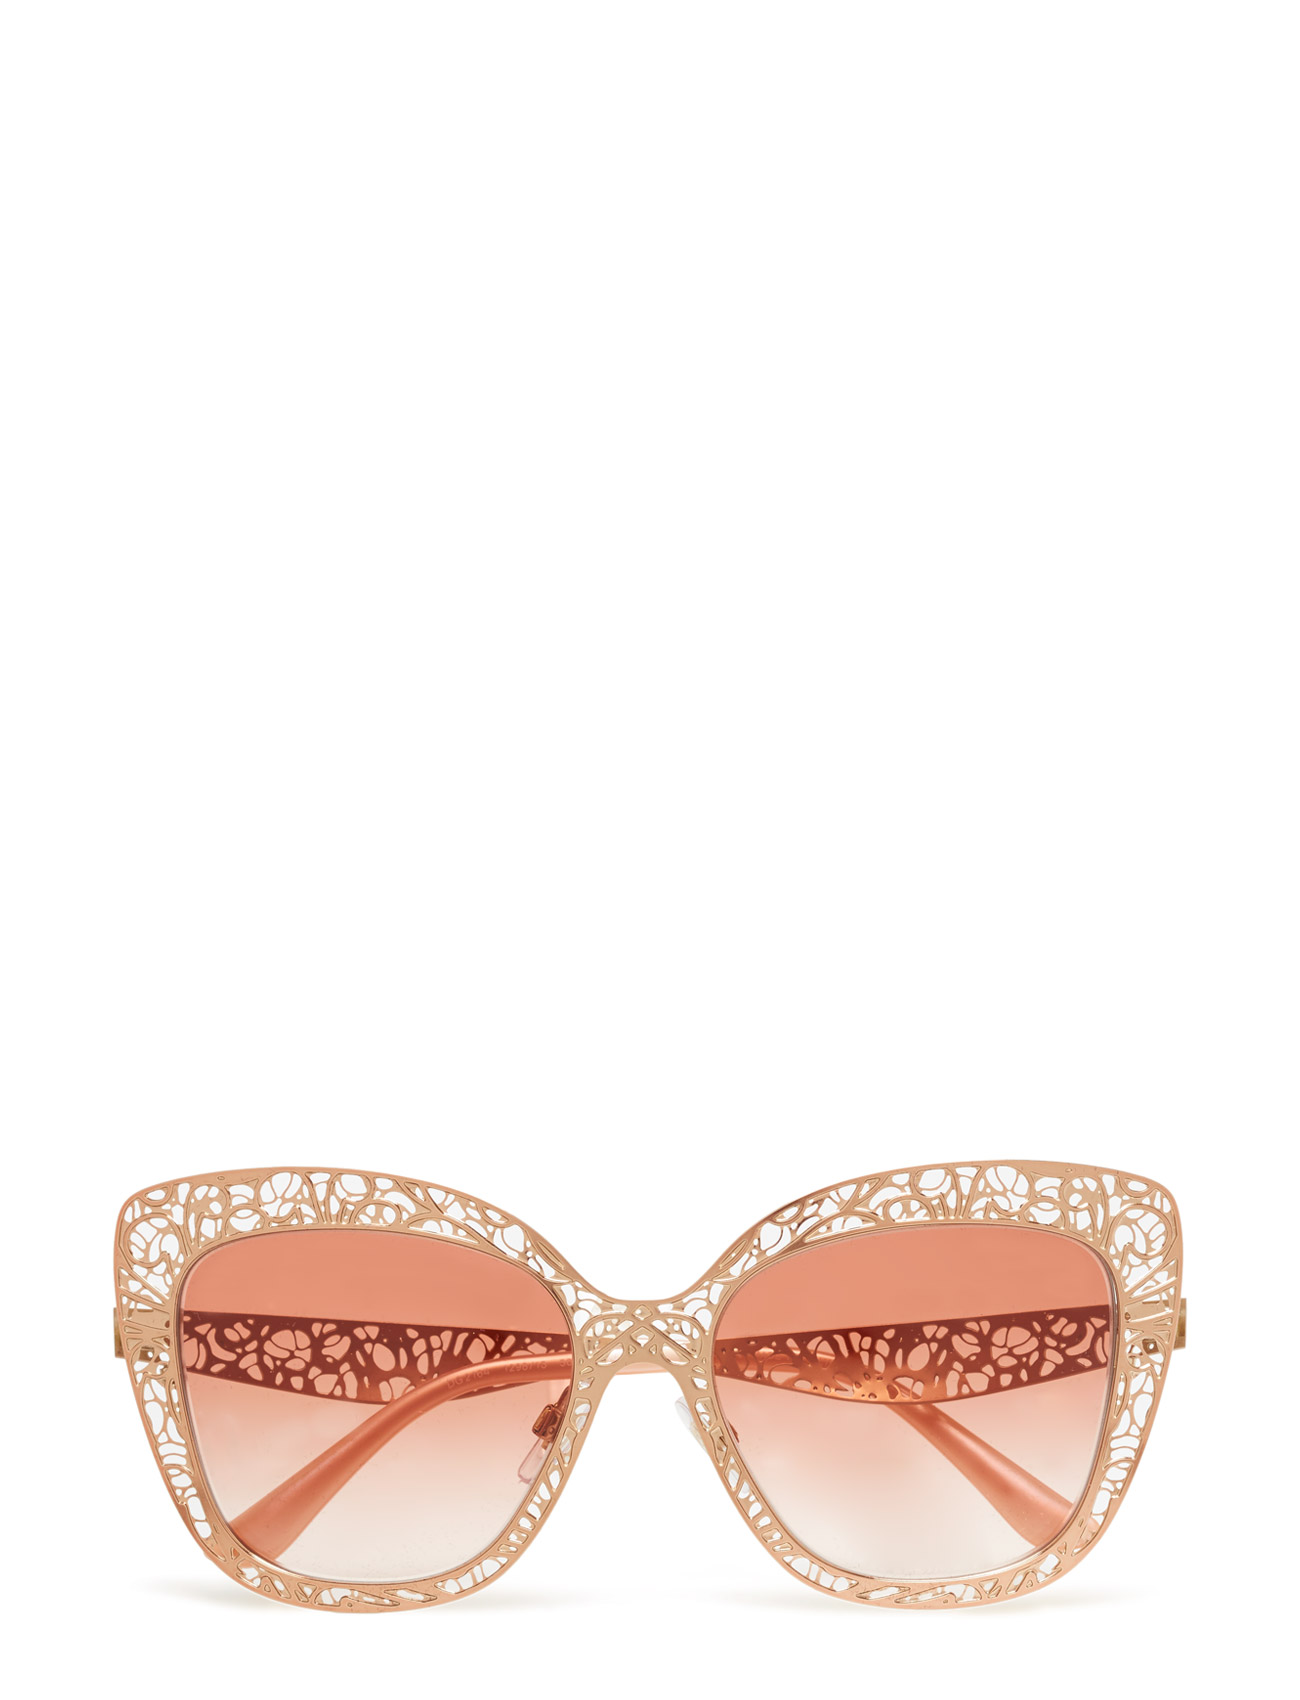 Cat Eye Dolce & Gabbana Sunglasses Solbriller til Damer i